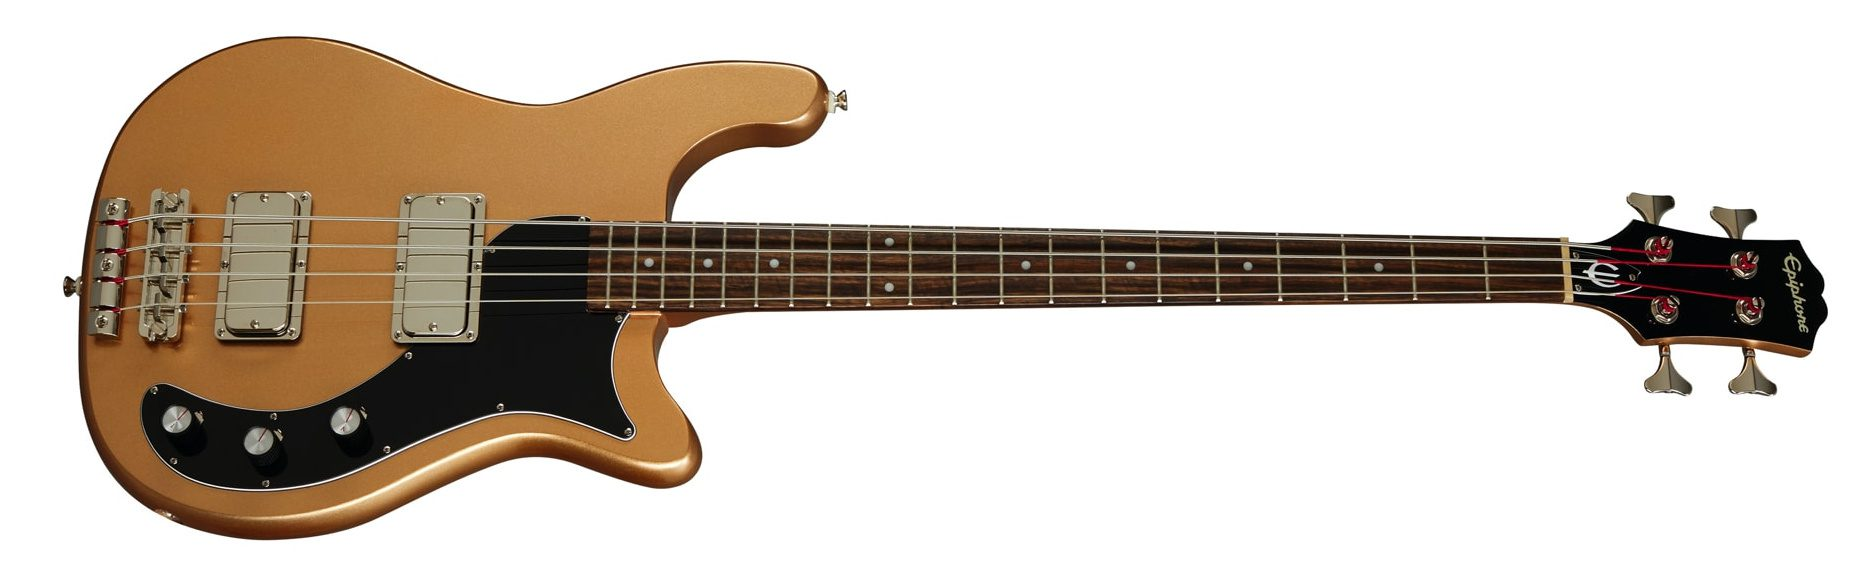 Epiphone Embassy Bass in Smoked Almond